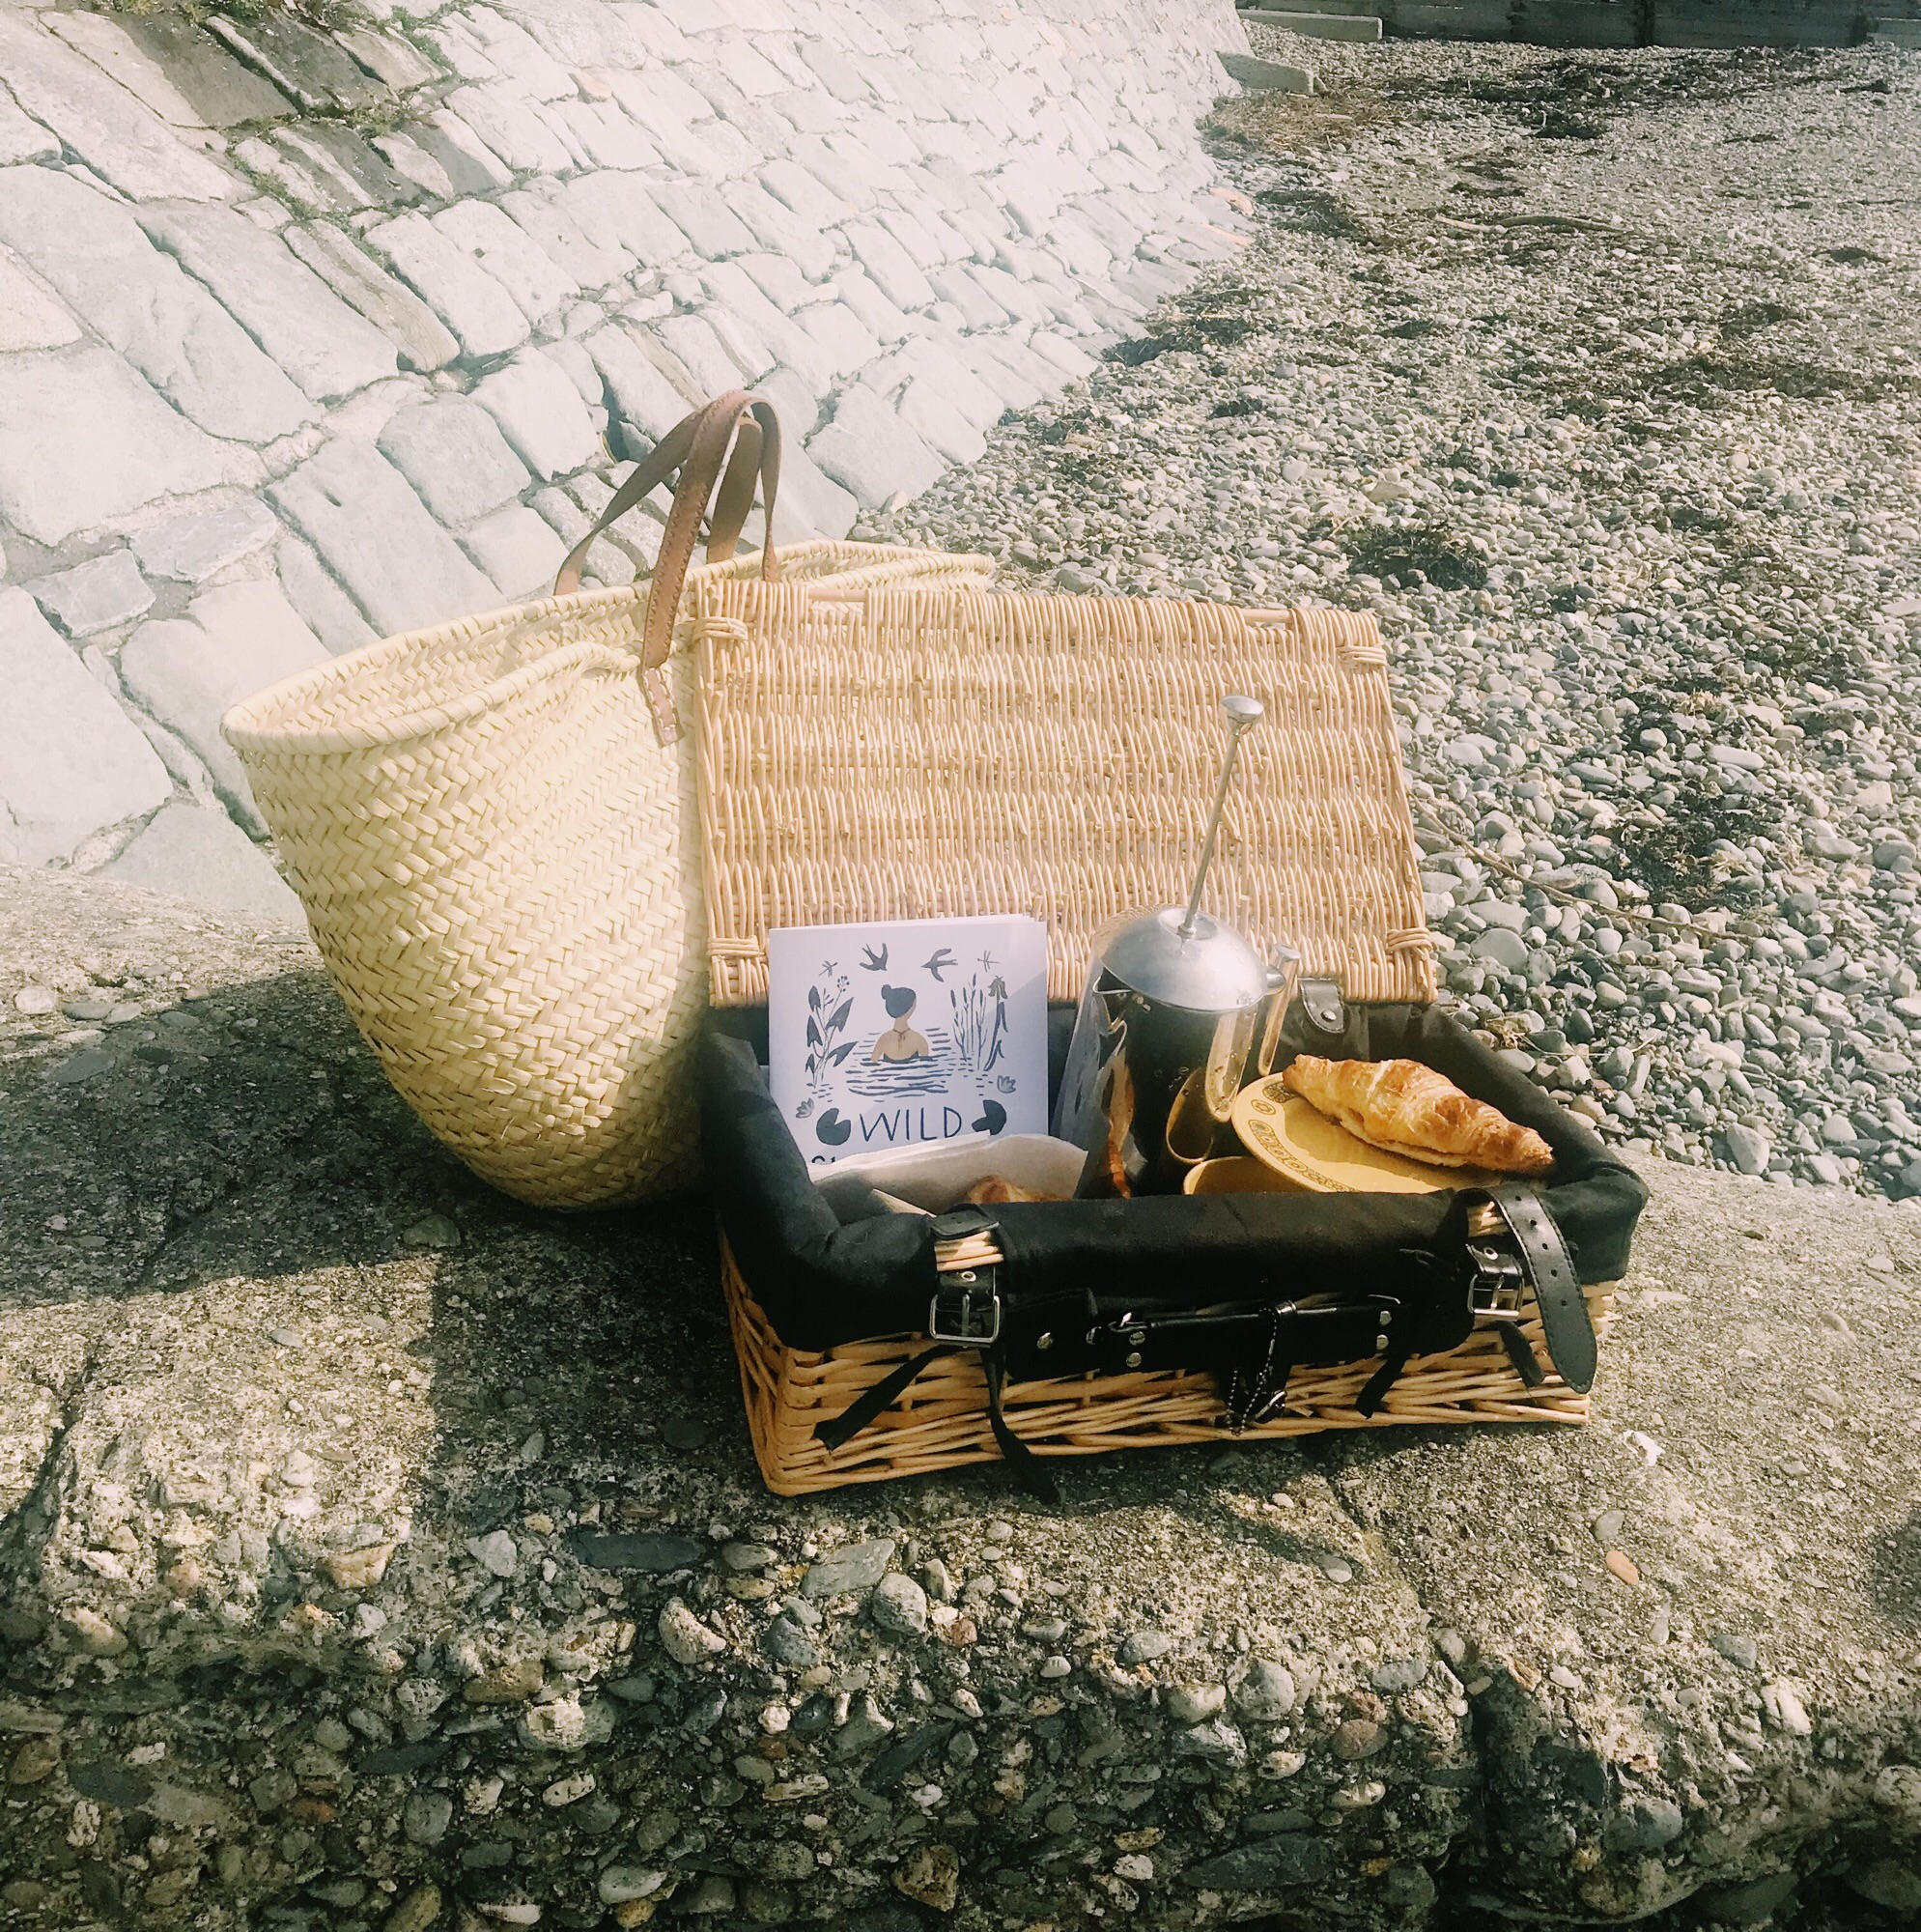 Beach picnic essentials - coffee, carbs and the  wild swimming book